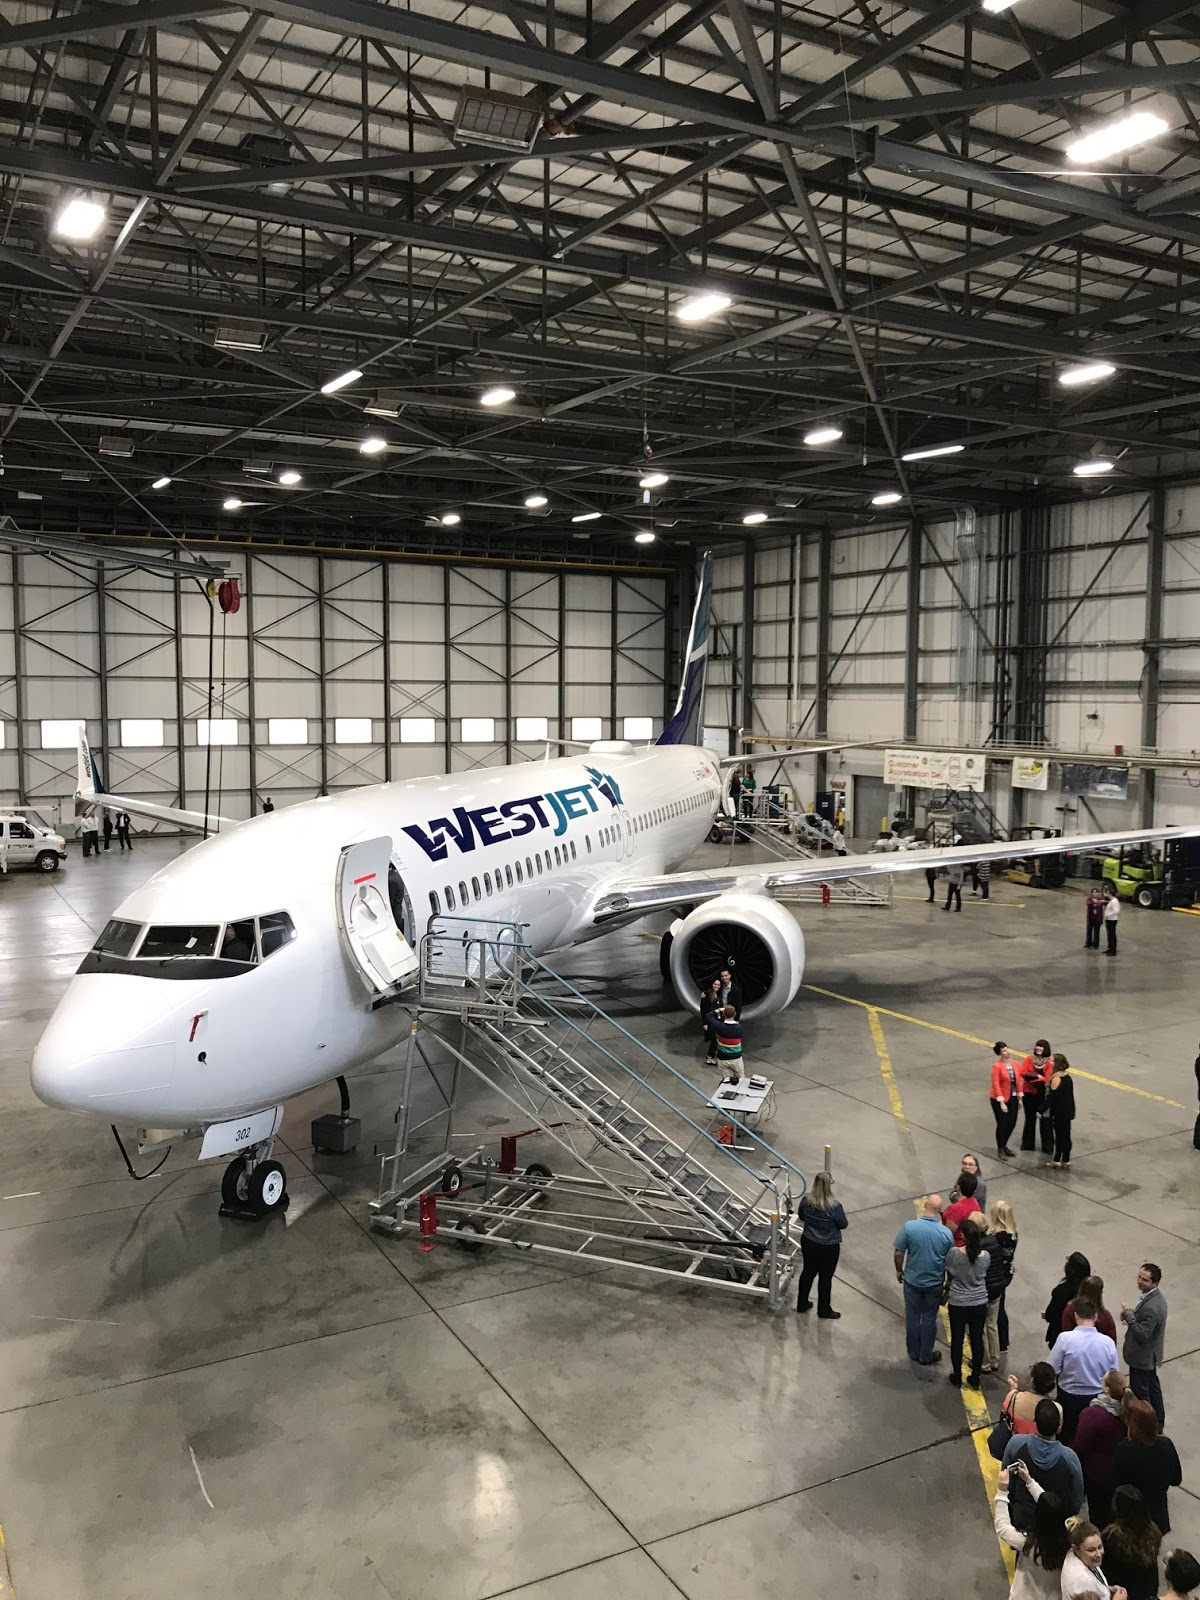 Rewards Canada: The unveiling of WestJet's 737 Max 8 with photos and